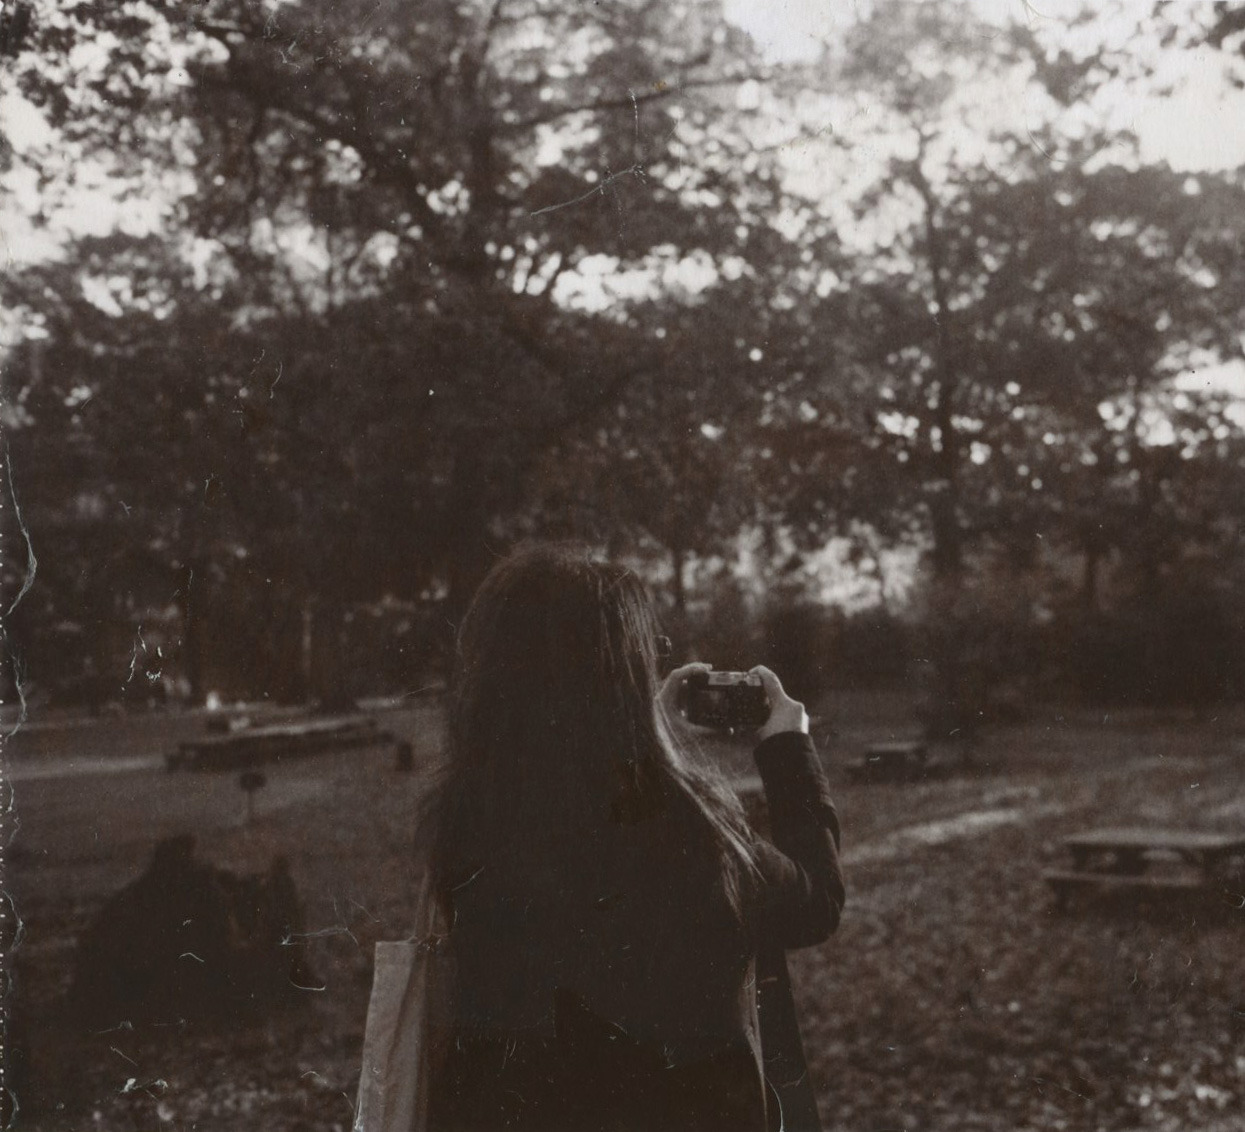 lizabeth.  in forest park, queens.  (mamiya+polaroid sepia)